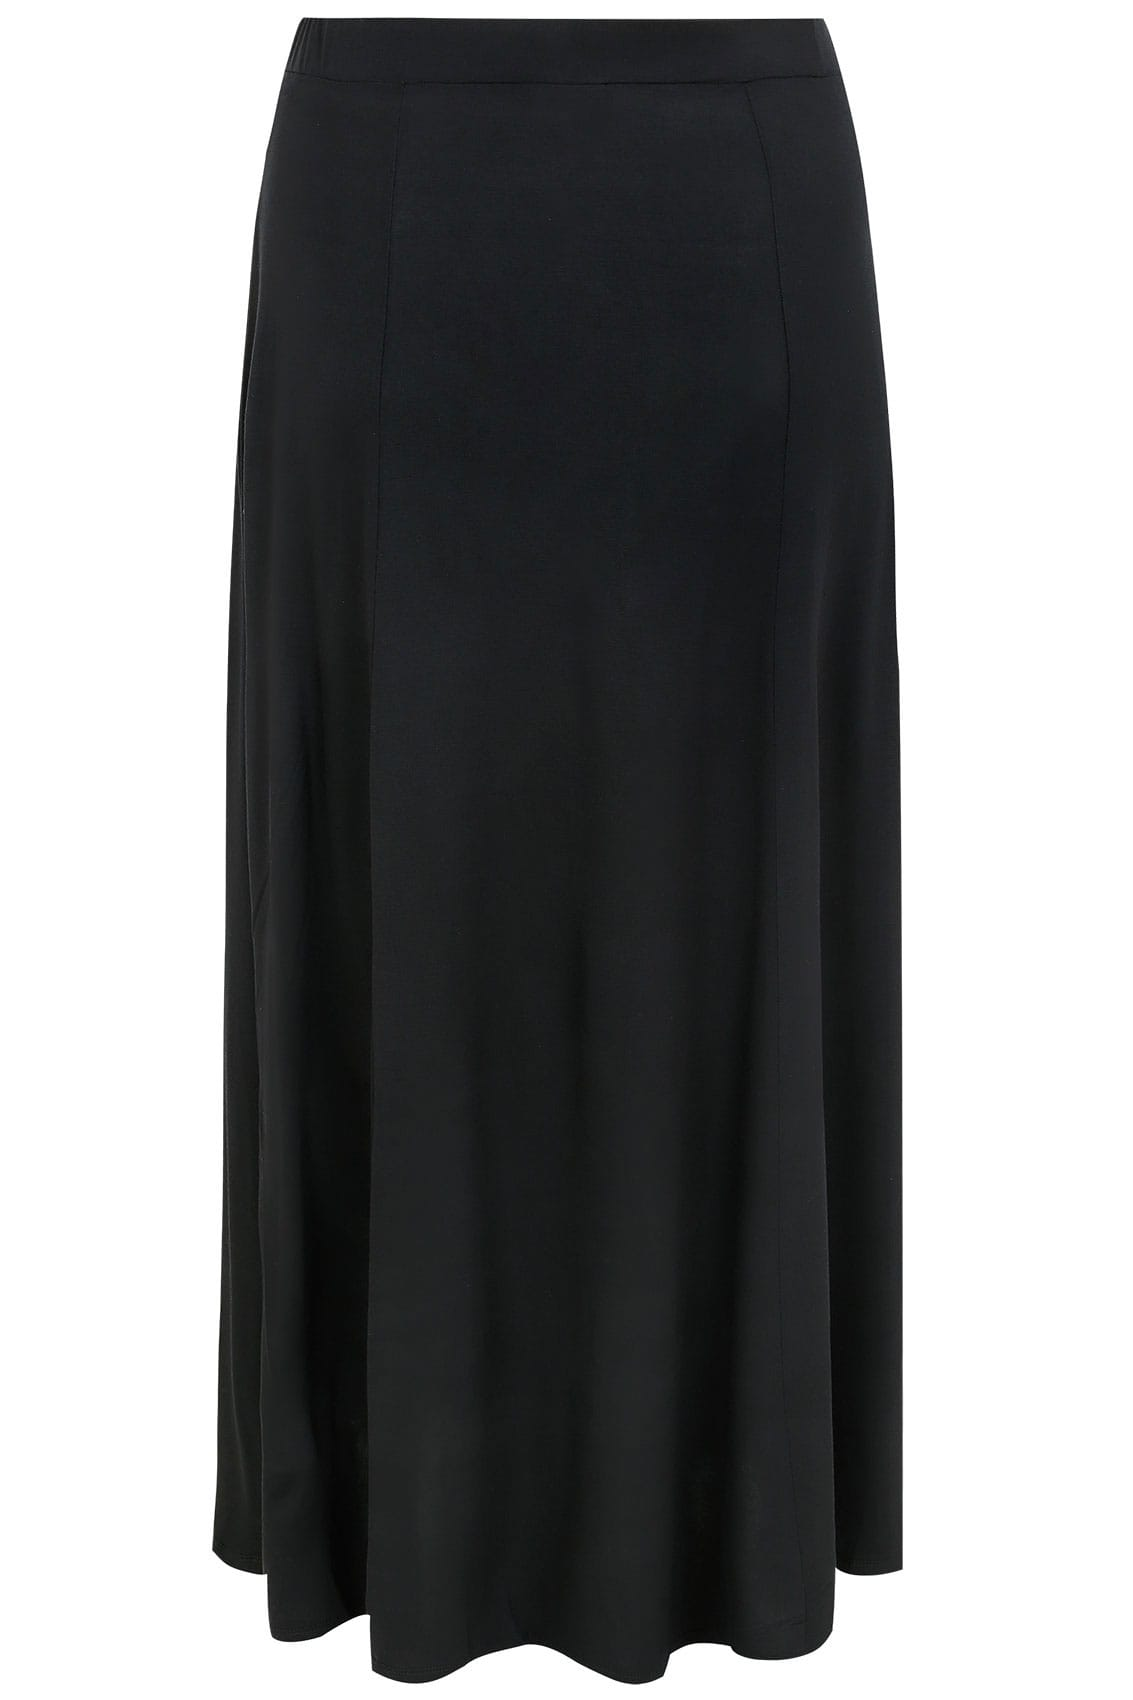 915d9299d94338 Black Maxi Jersey Skirt With Pockets, Plus size 16 to 36